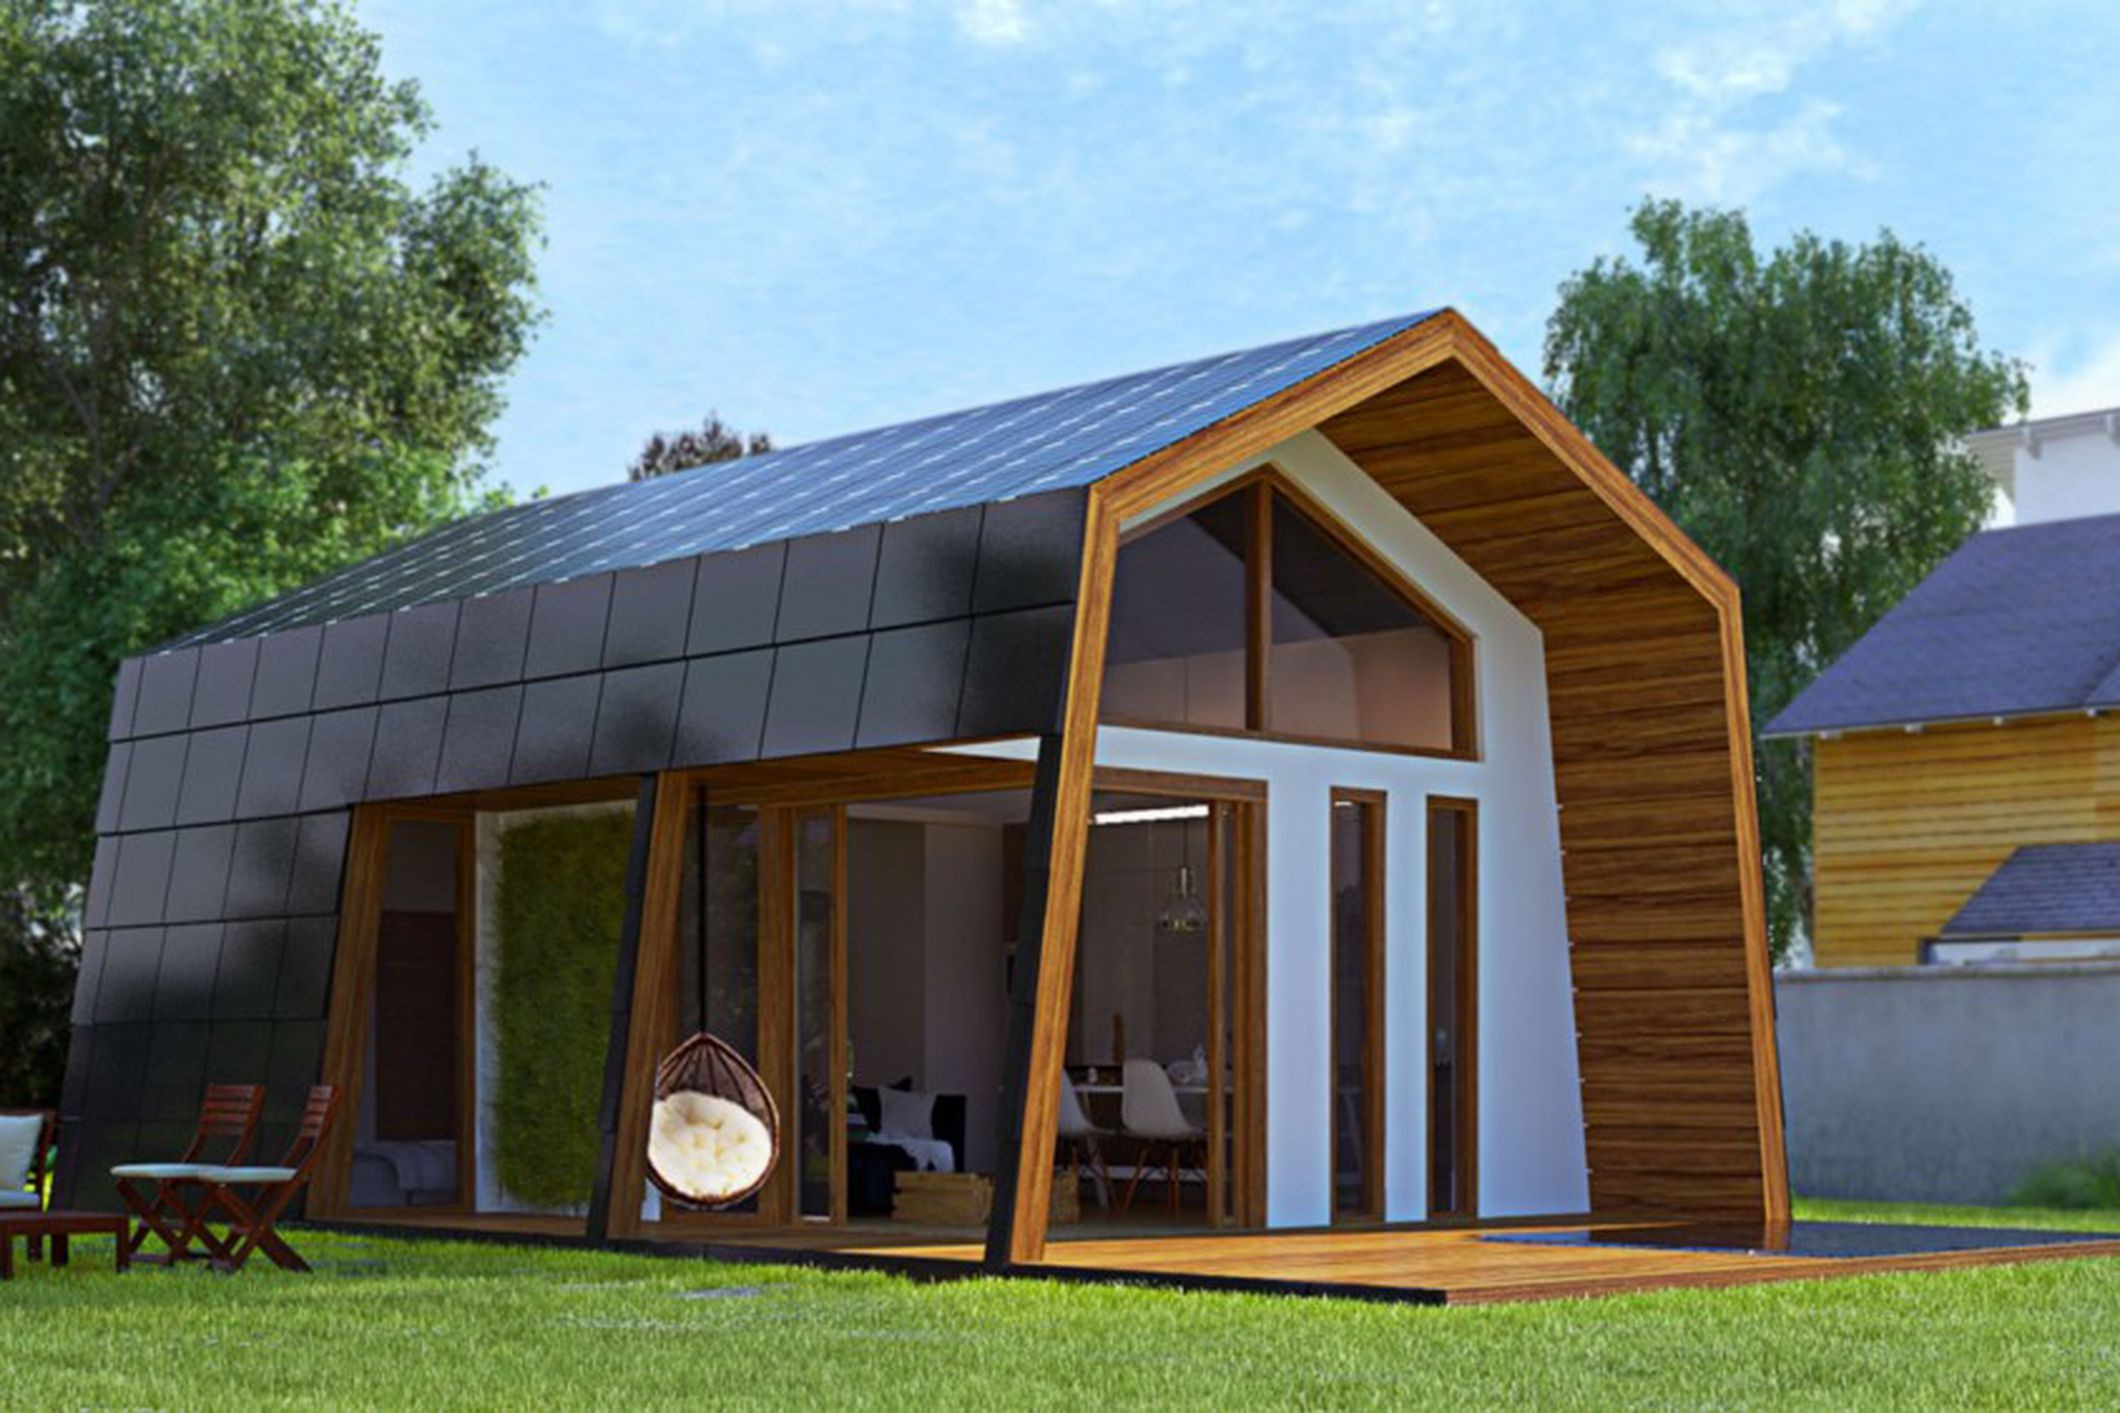 ecokit 39 s prefab cabin is sustainable home you can assemble ForEco Cabin Kits